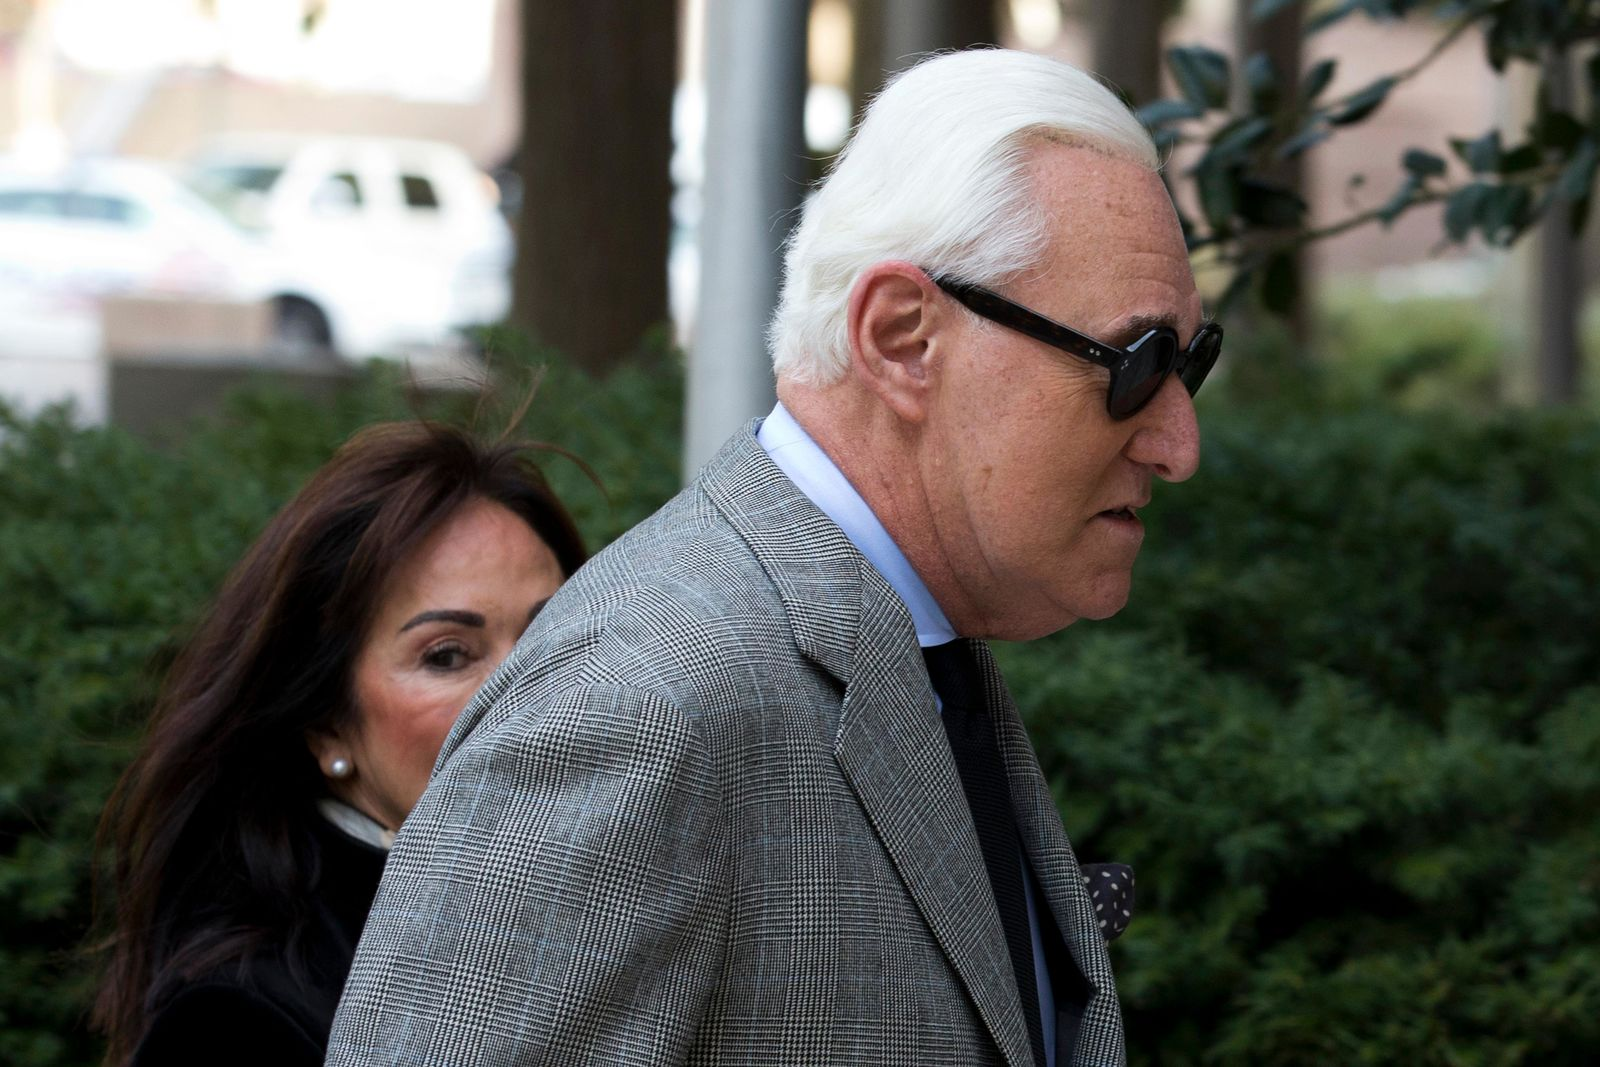 Roger Stone accompanied by his wife Nydia Stone, left, arrives at federal court in Washington, Thursday, Nov. 14, 2019. (AP Photo/Jose Luis Magana)